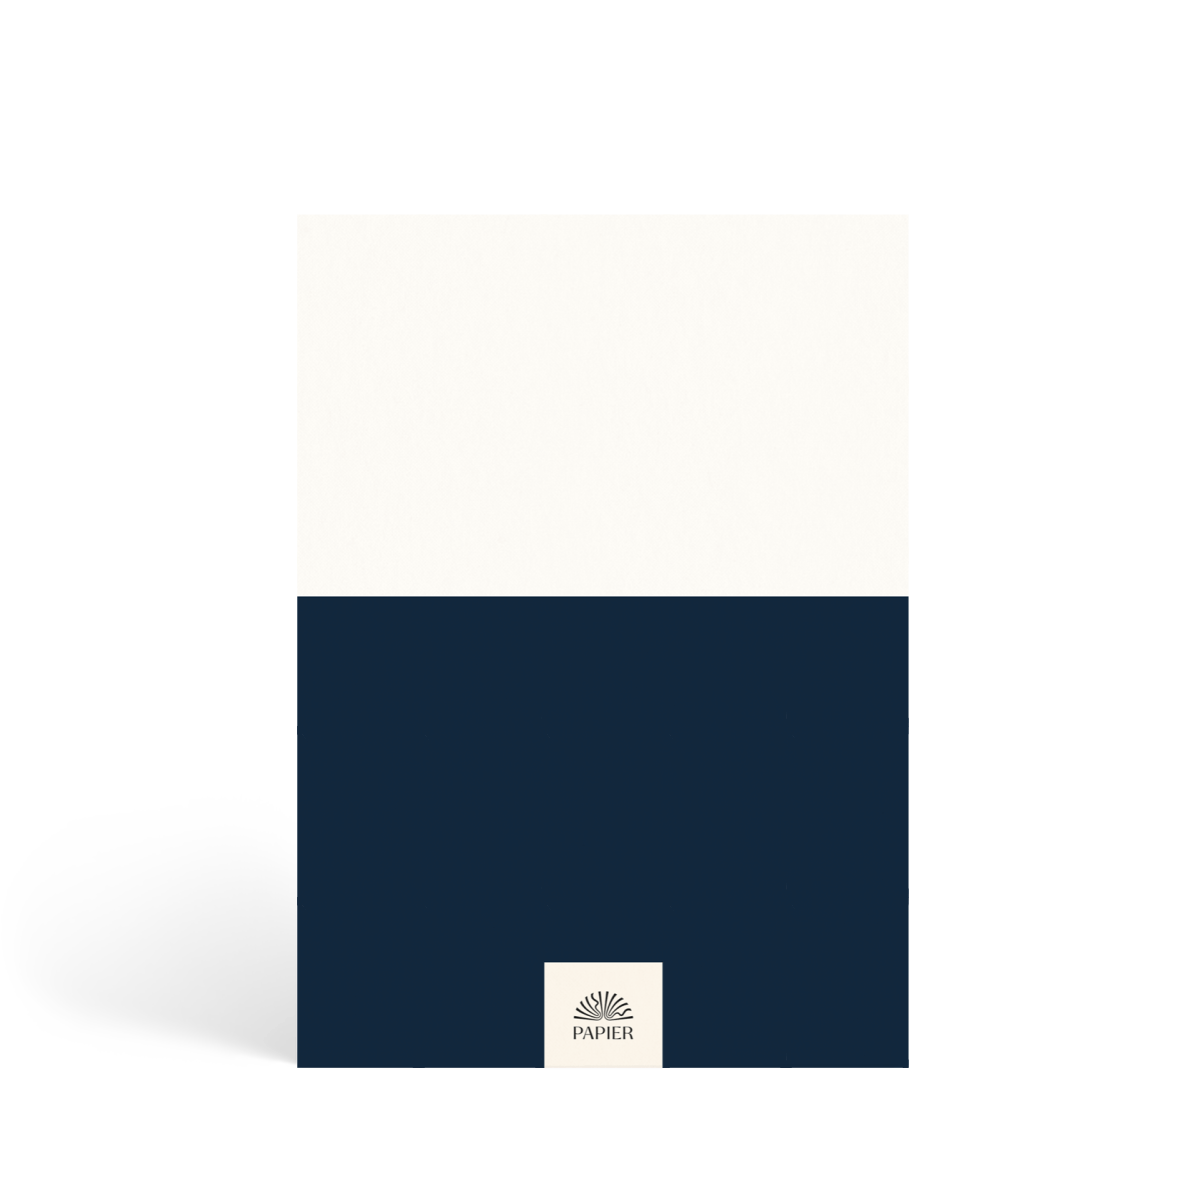 Https%3a%2f%2fwww.papier.com%2fproduct image%2f90119%2f5%2fdemi navy 22542 back 1569935565.png?ixlib=rb 1.1